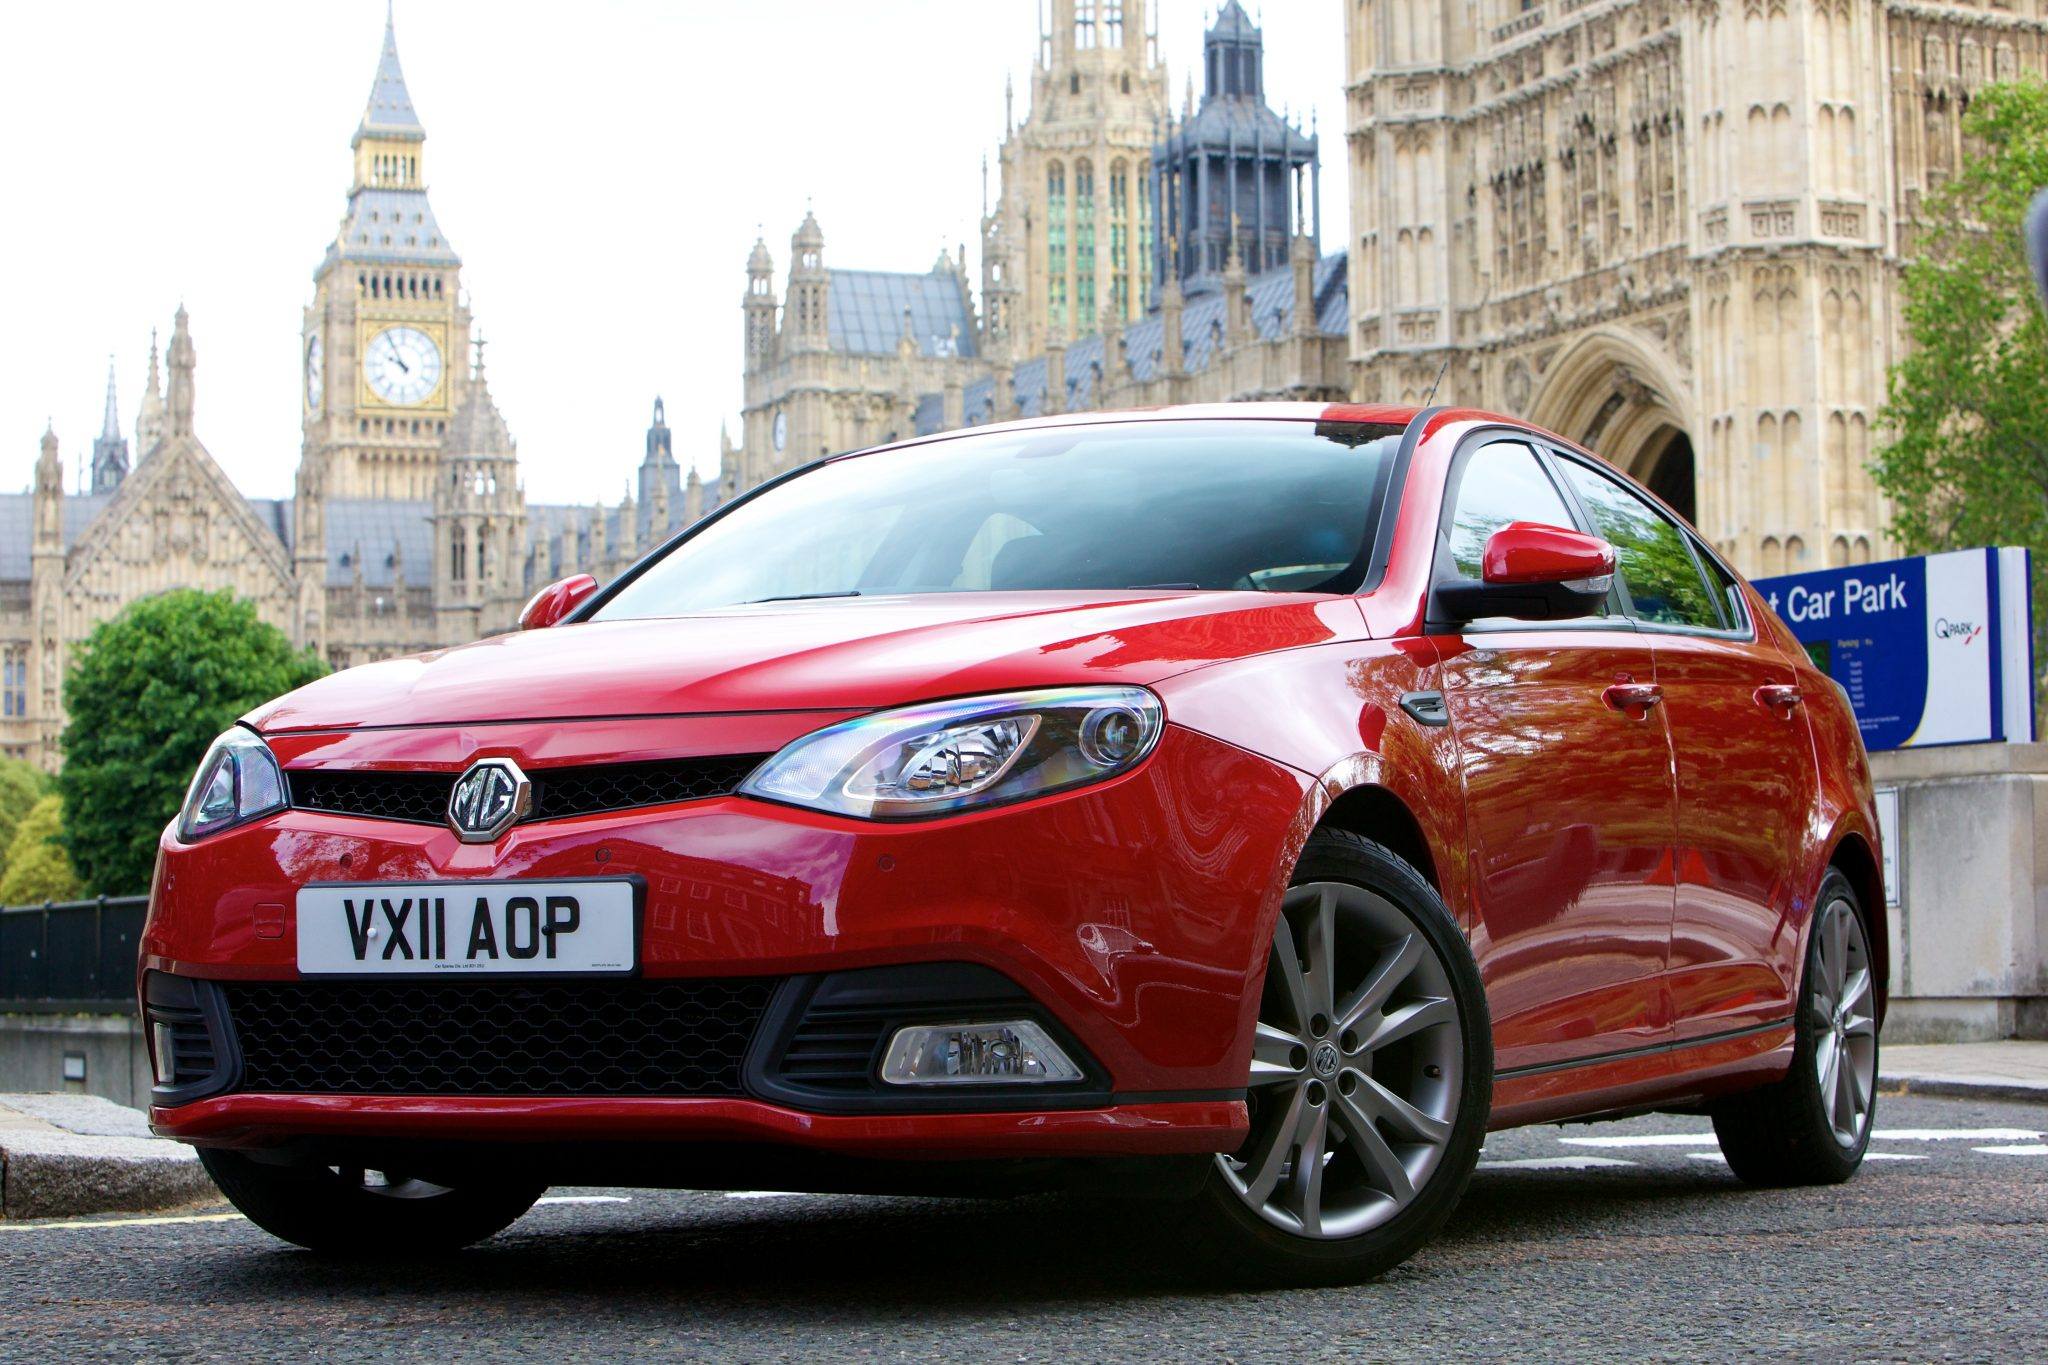 ukauto brexit voiture anglaise1 - Voiture anglaise occasion pas cher comment? Video